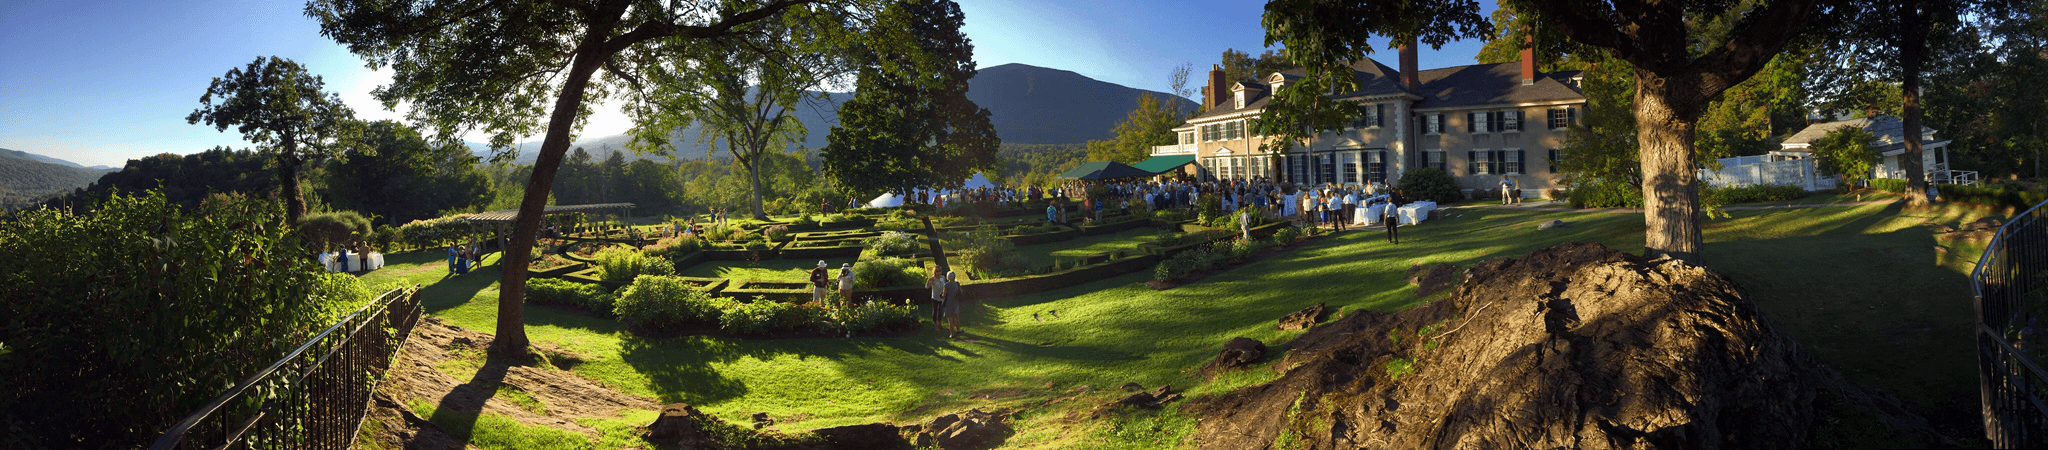 Panoramic image of Hildene, The Lincoln Family Home